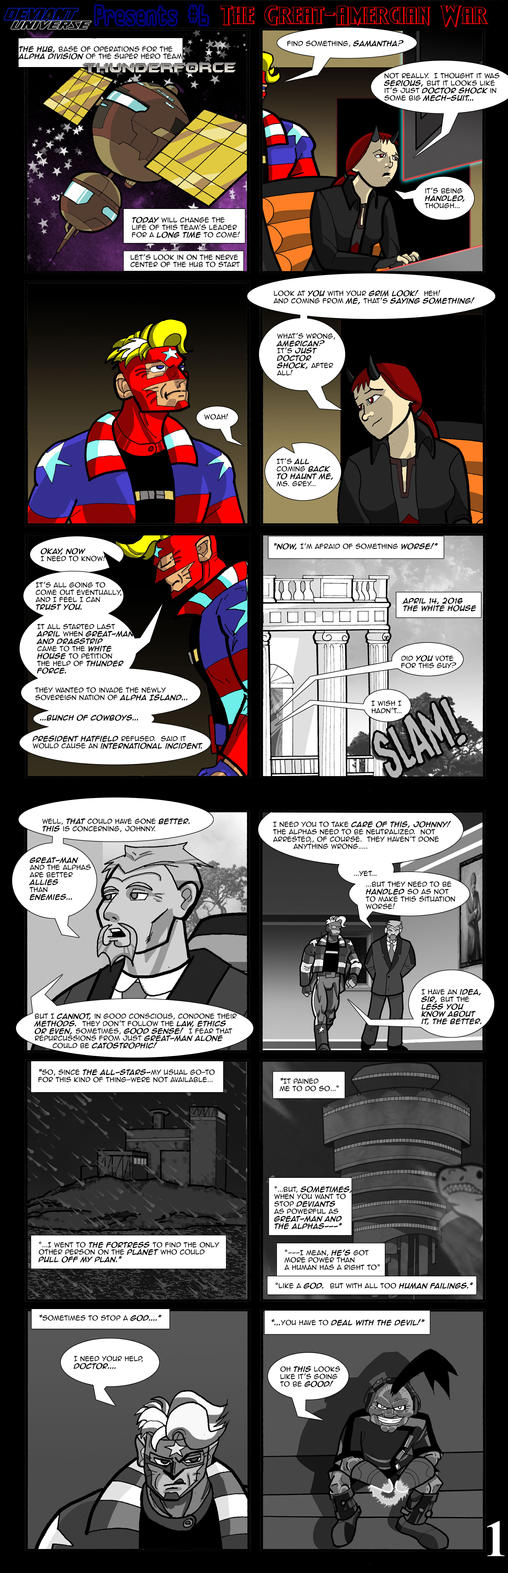 The Great-American War pg 1 by bogmonster